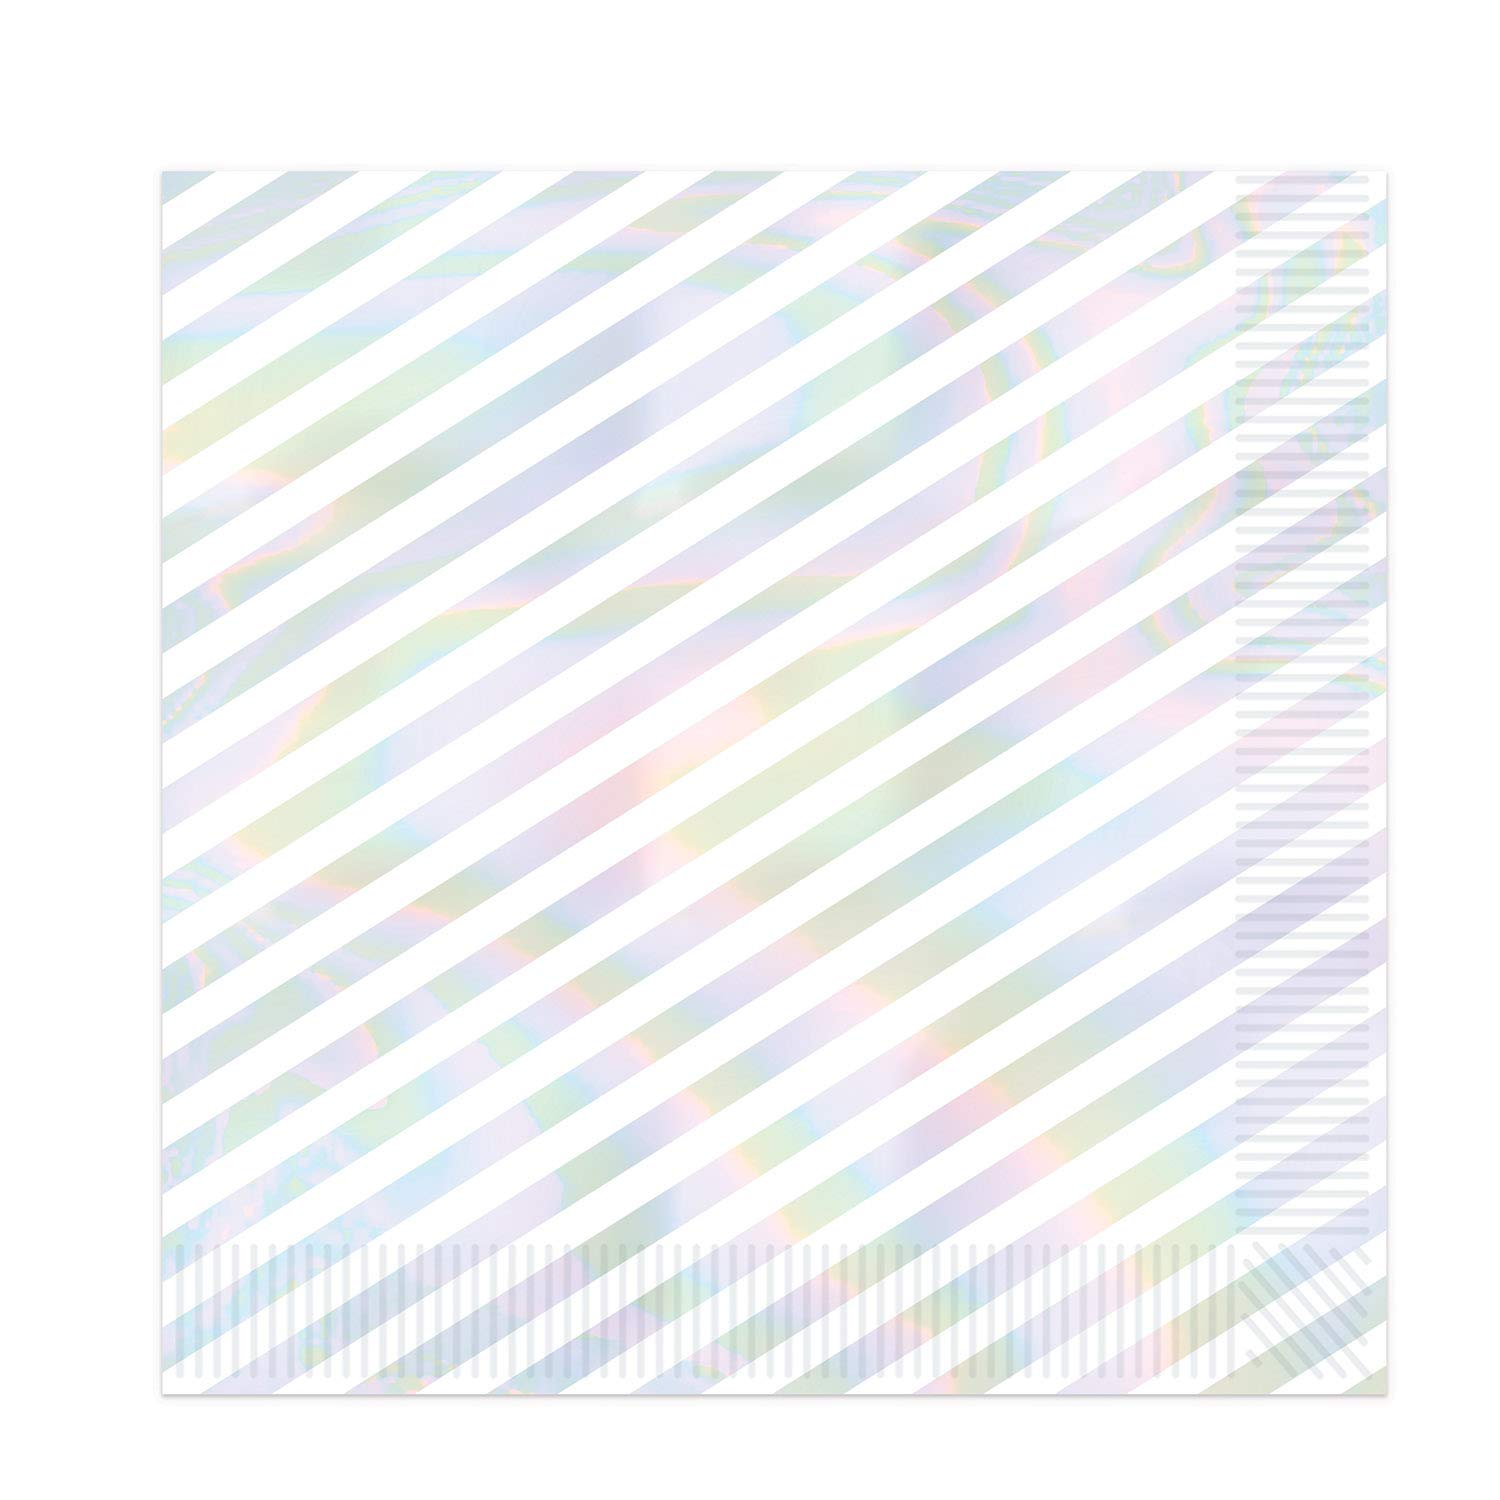 Beistle Iridescent Party Supplies, Iridescent Stripes Luncheon Paper Napkins, Pack of 192